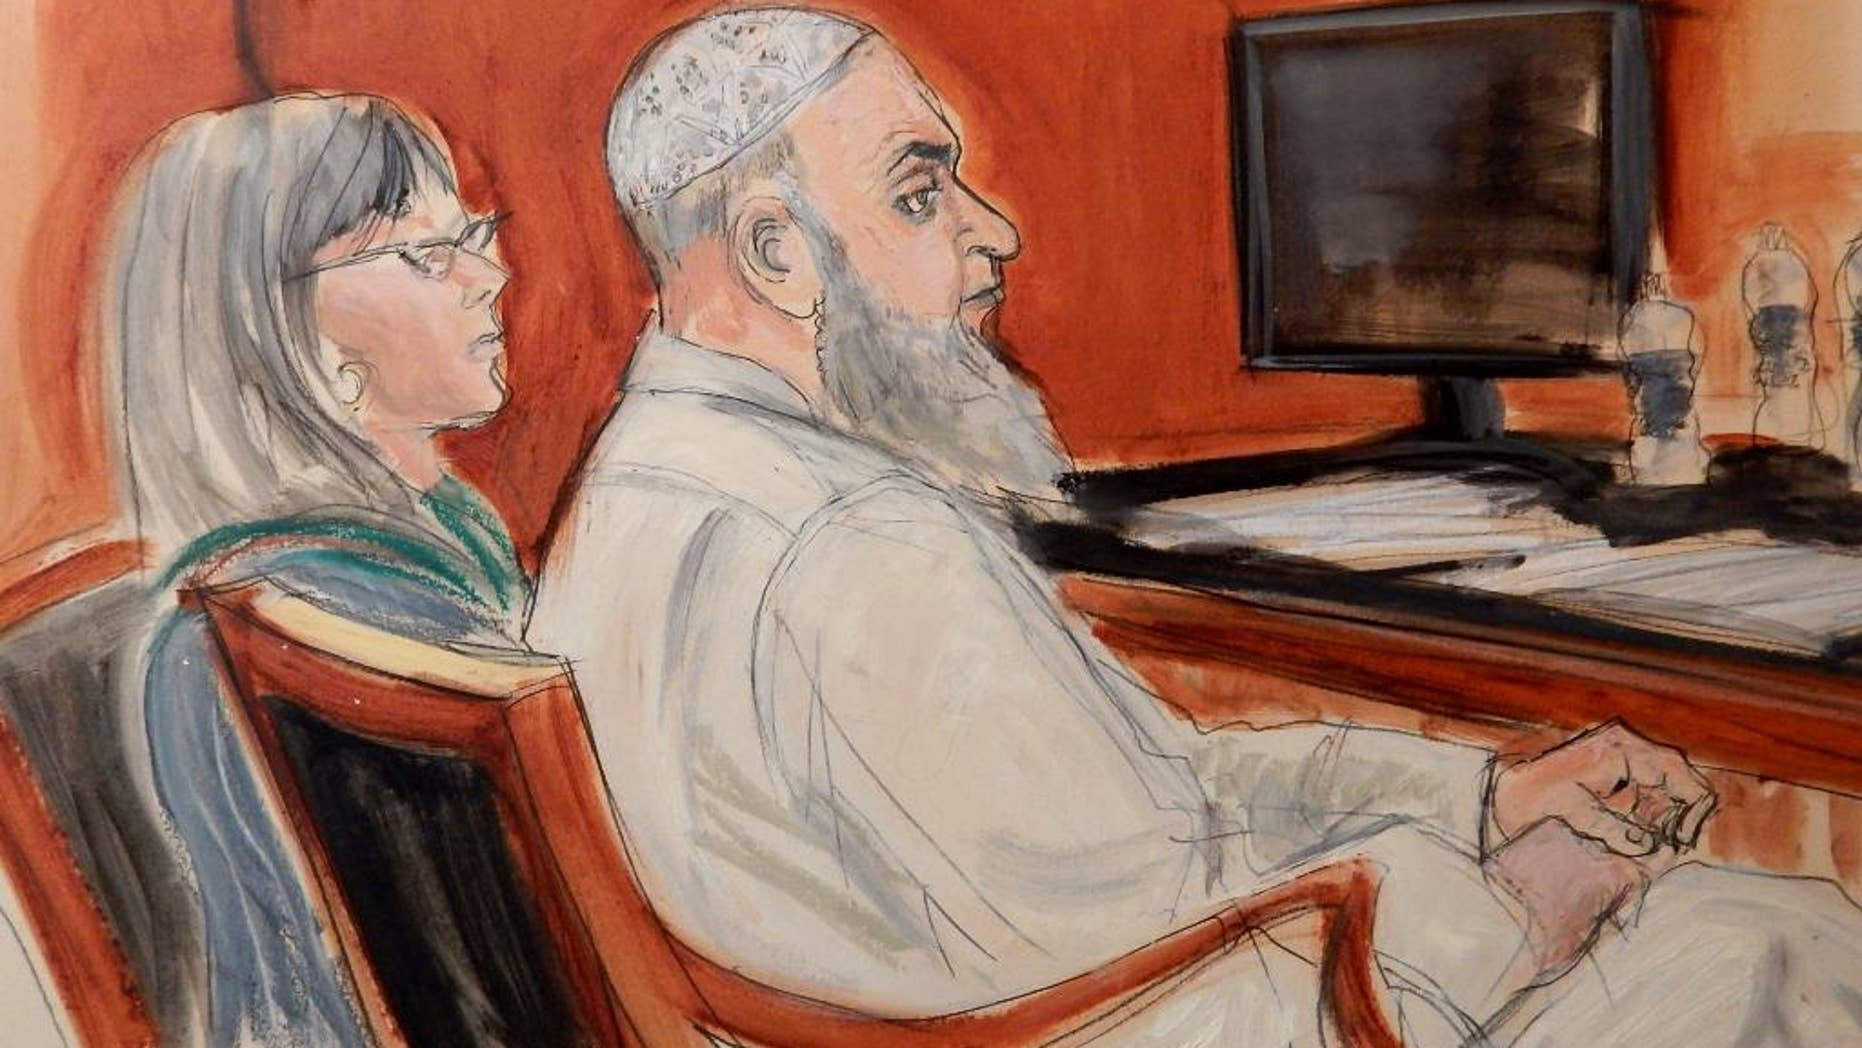 FILE - In this Jan. 20, 2015, file courtroom sketch, Khaled al-Fawwaz, right, a defendant in the 1998 bombings of the U.S. embassies in Kenya and Tanzania that killed 224 people, is seated next to his defense attorney, Barbara O'Connor, during jury selection in Manhattan Federal Court. Al-Fawwaz was convicted Thursday, Feb. 26, 2015, of conspiracy in the bombings of the two embassies. (AP Photo/Elizabeth Williams, File)